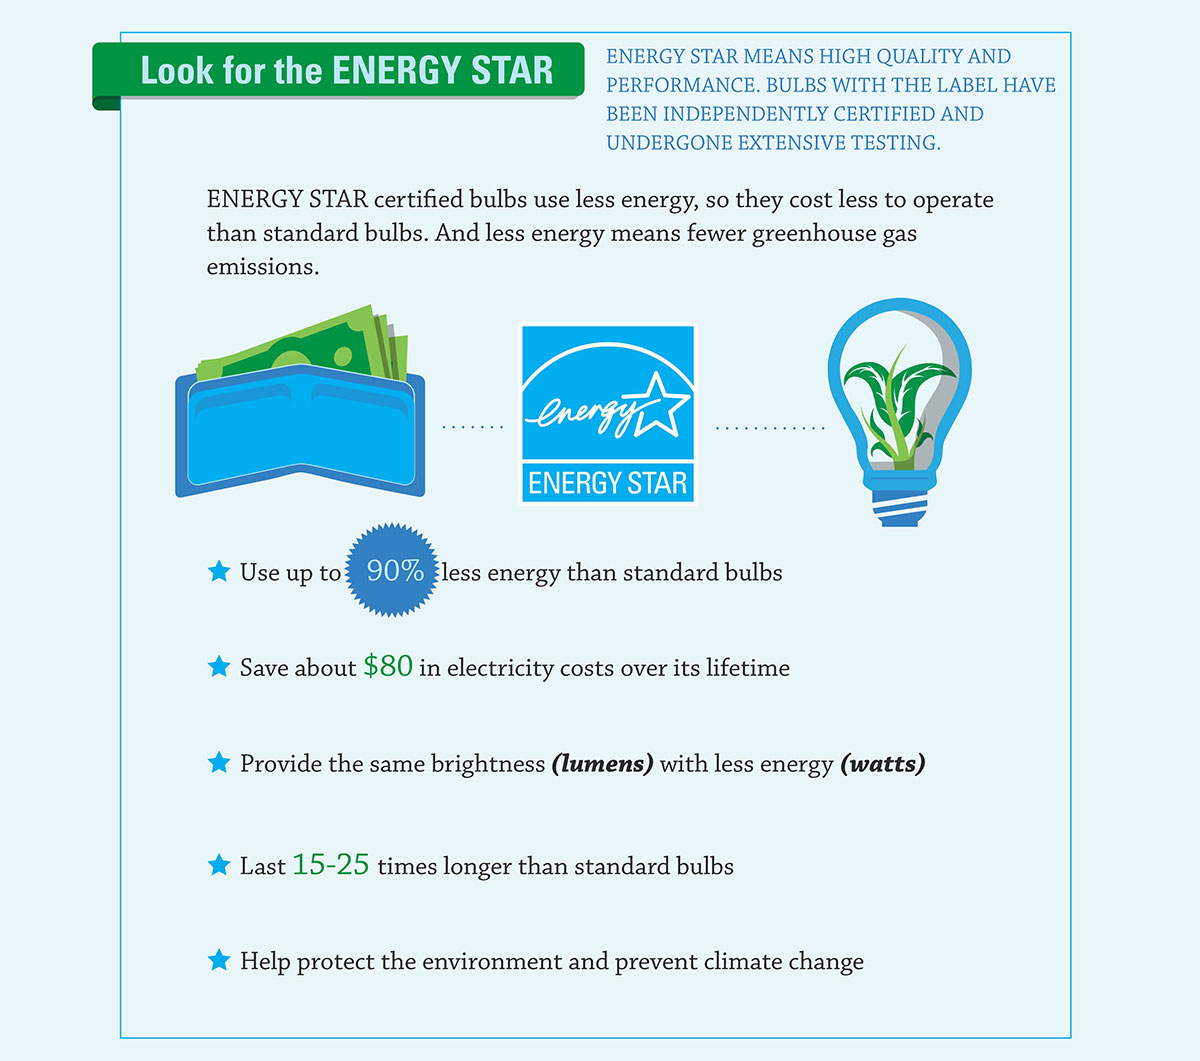 How much energy and money LEDs save compared to incandescent bulbs